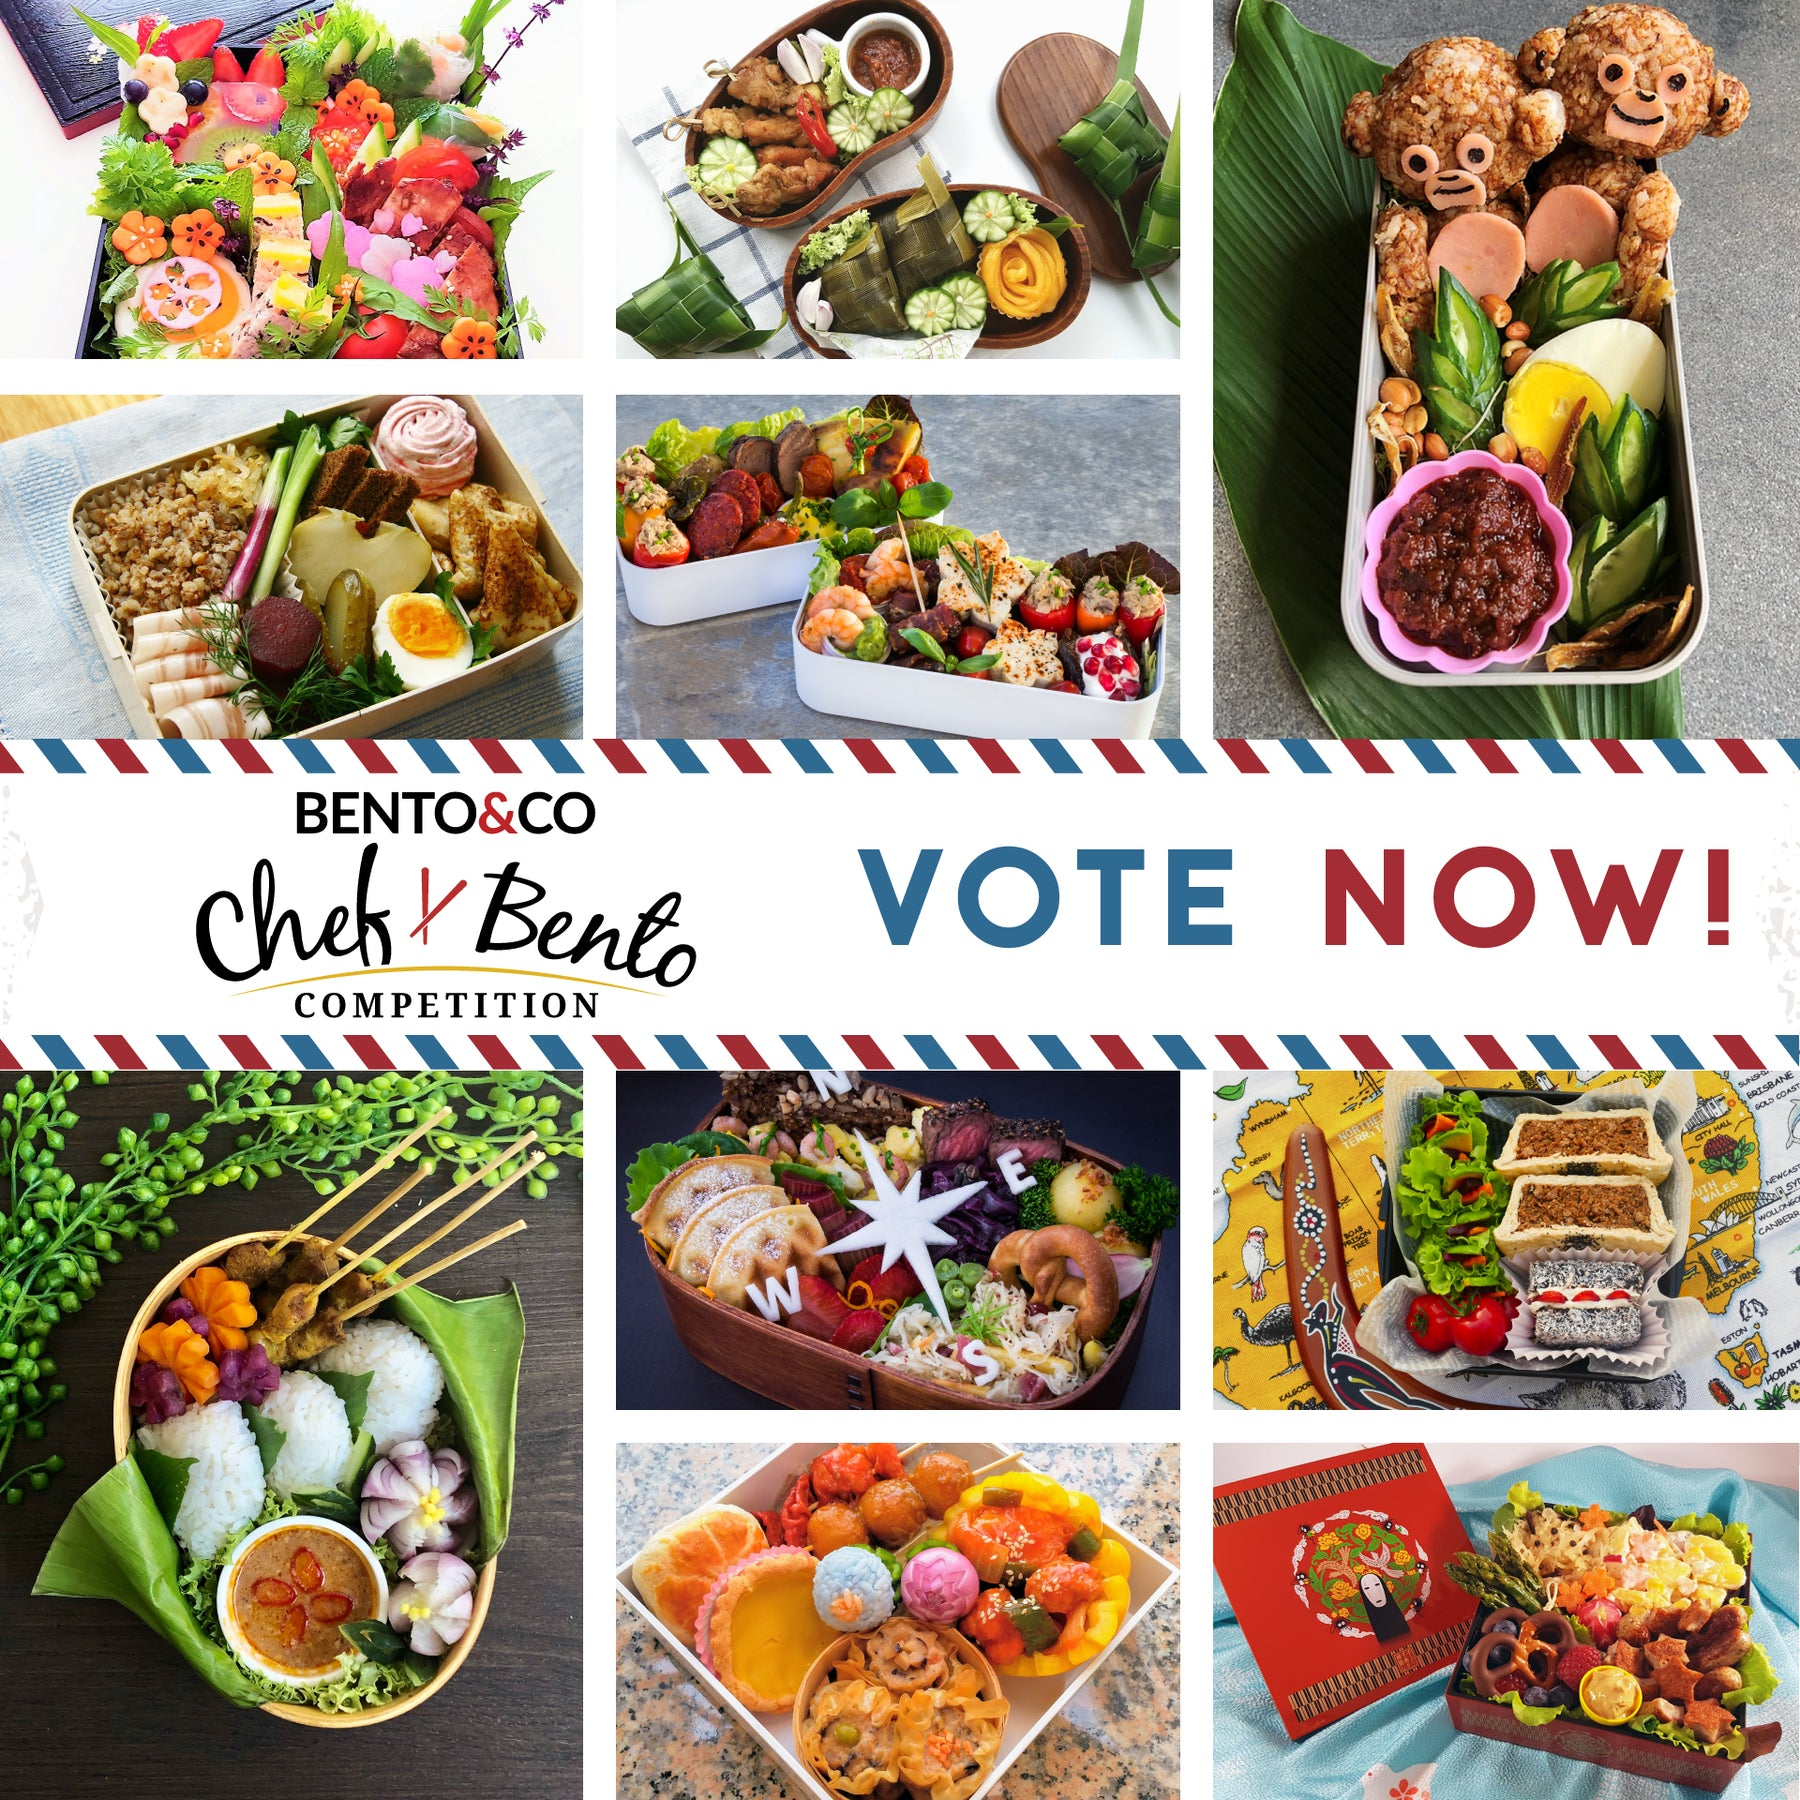 Chef Bento 2019 Grand Prize Winner + 10 Runner-up Finalists!